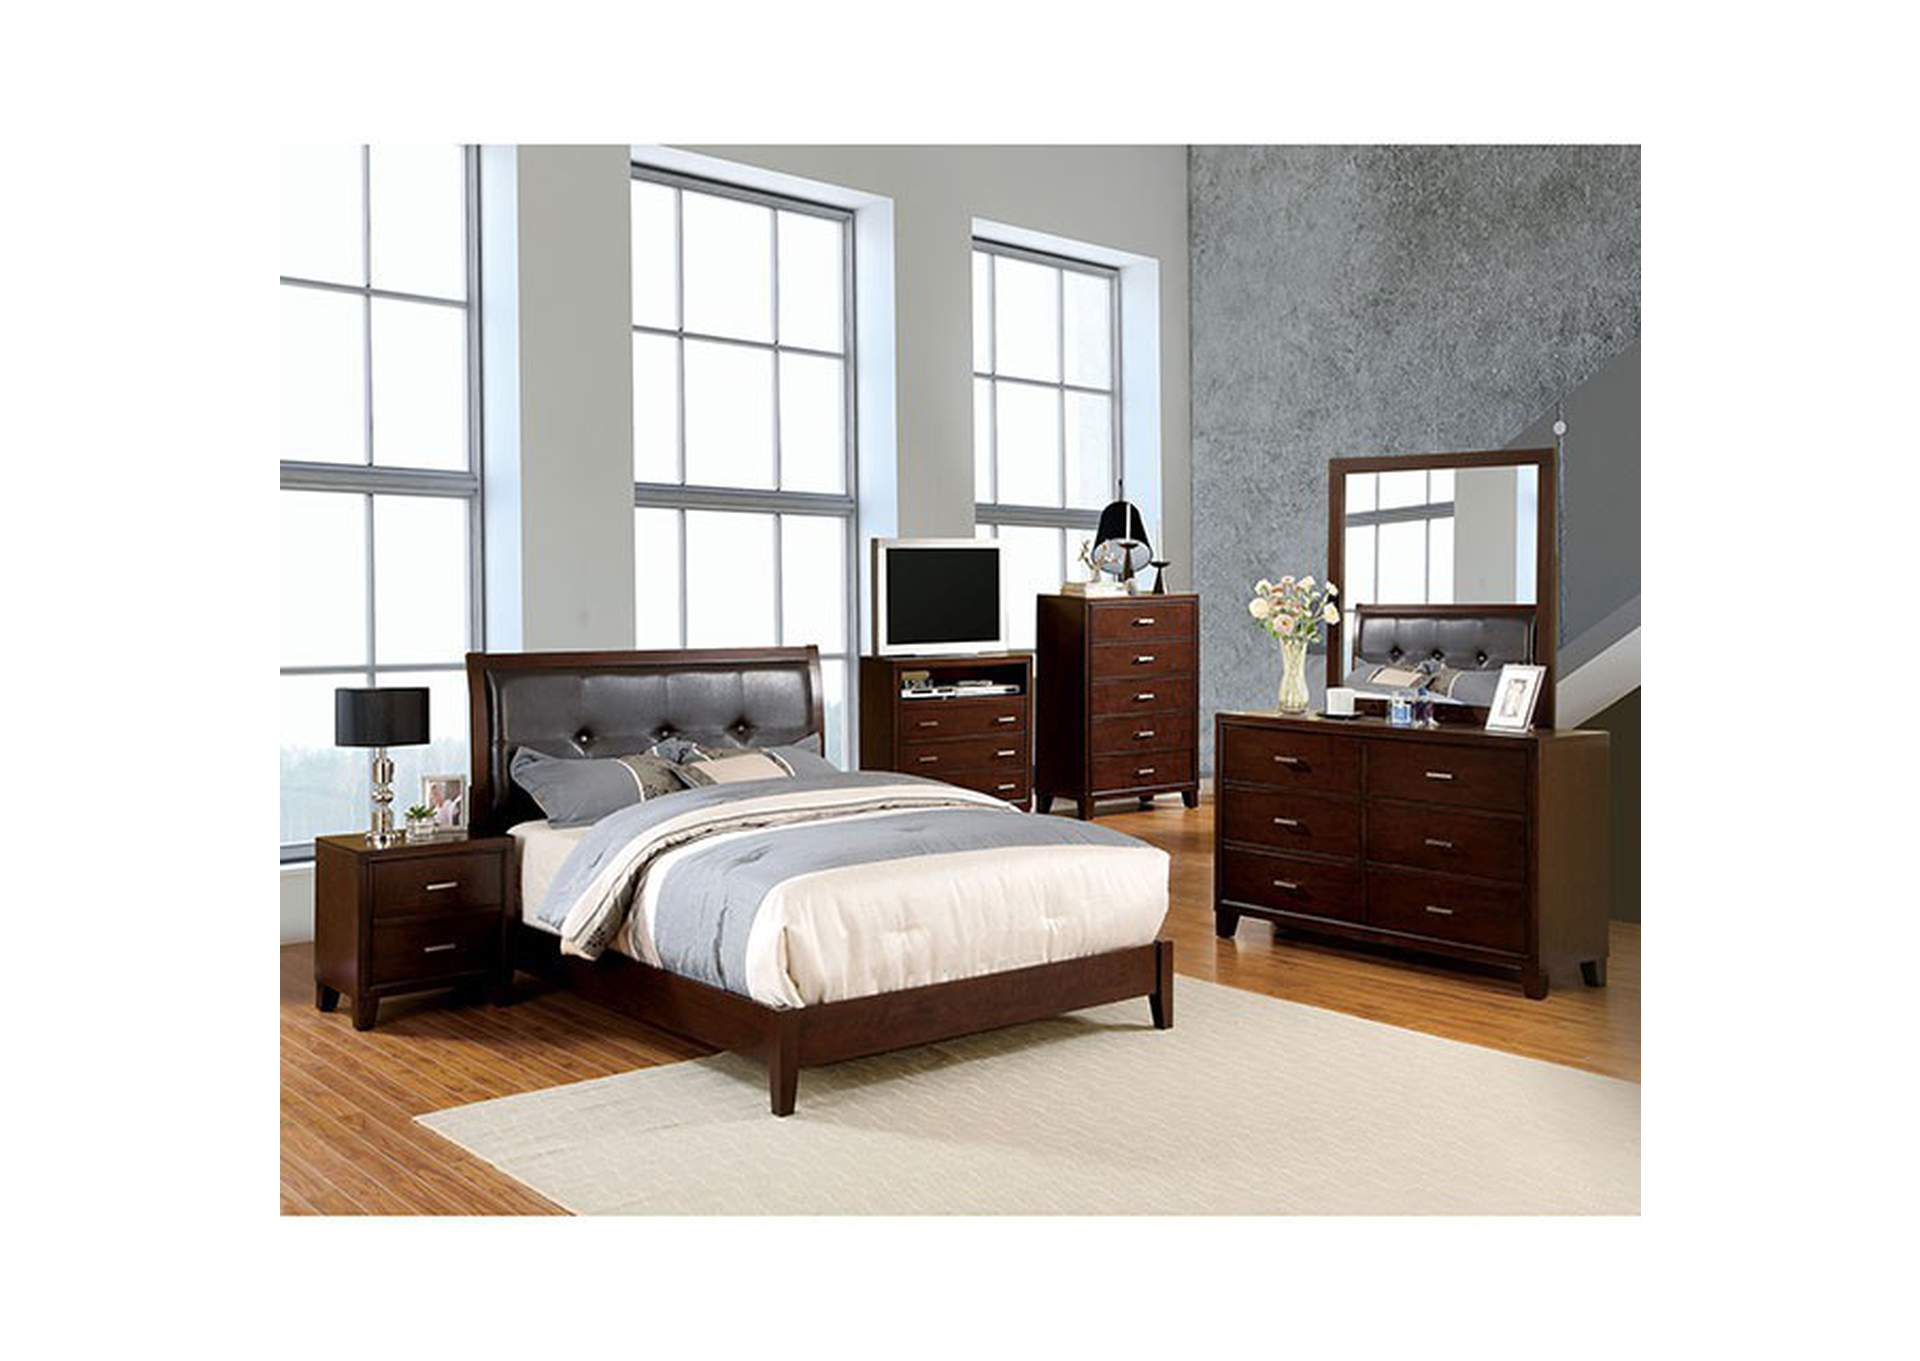 Enrico I Brown Queen Platform Bed,Furniture of America